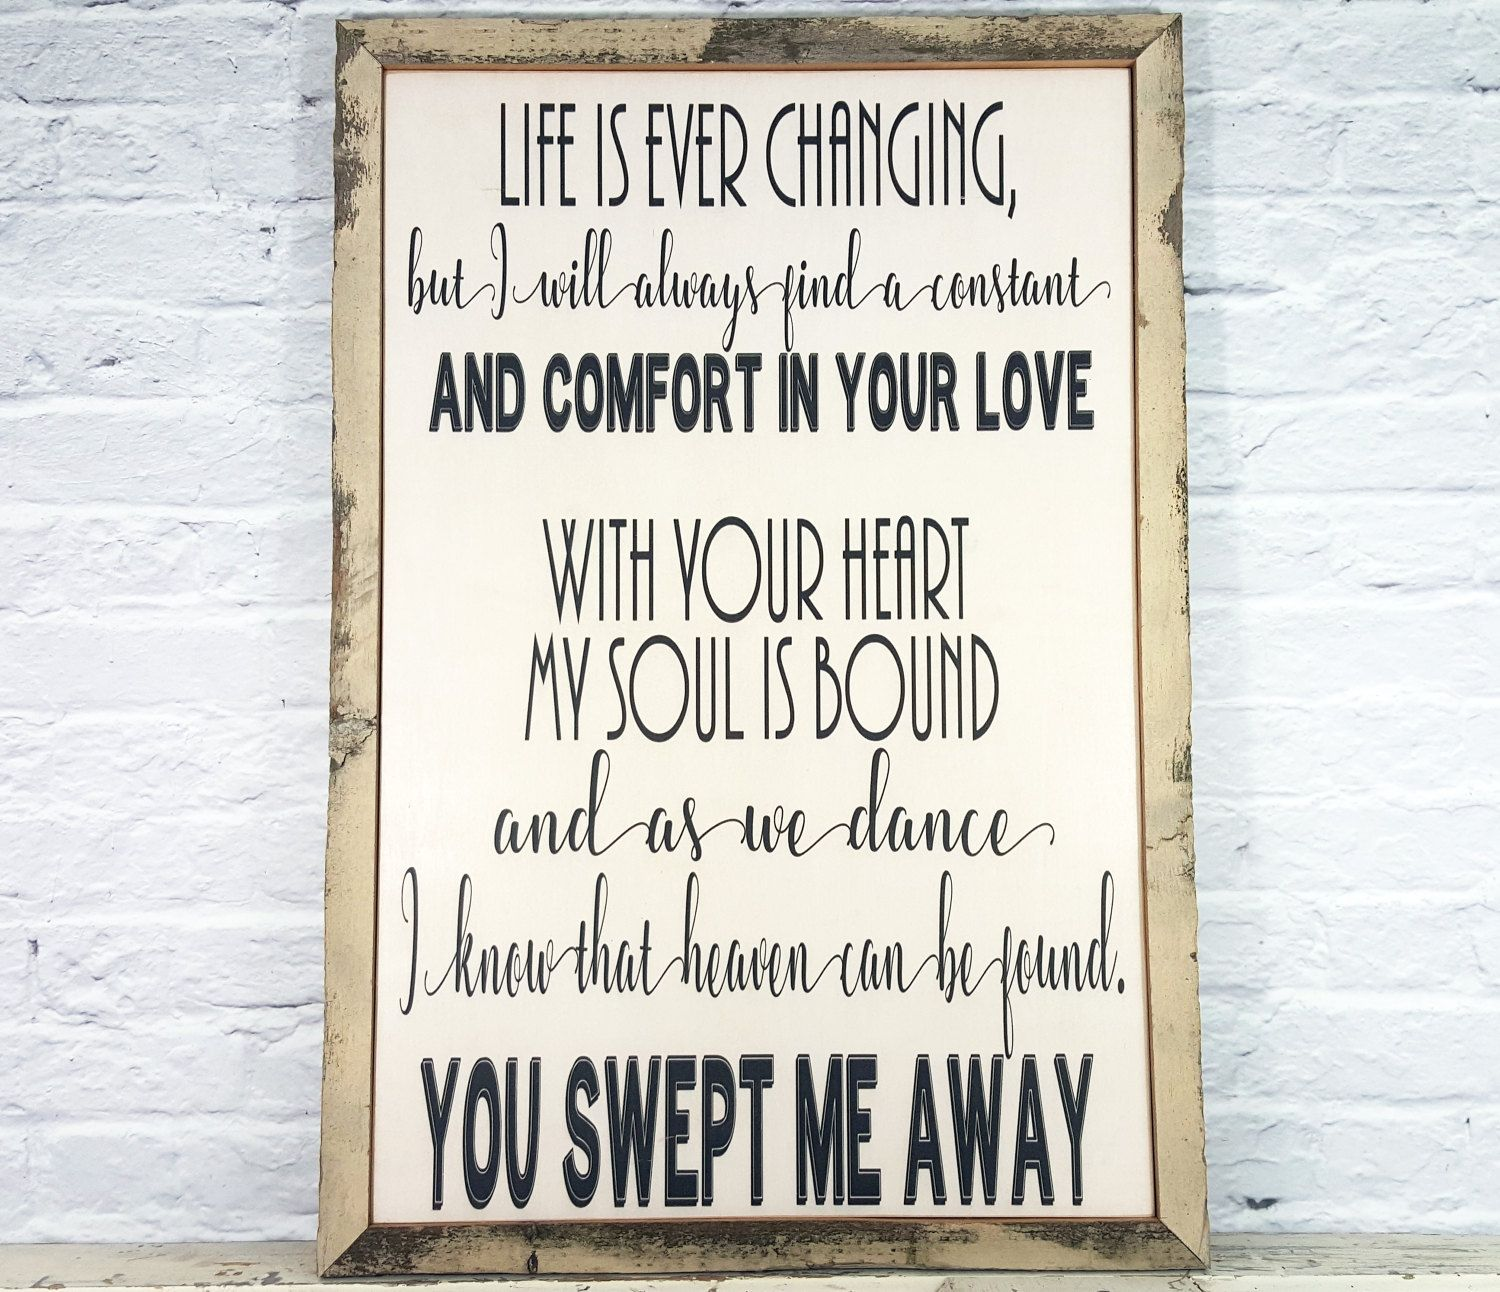 Wedding Song Lyric Art Song Lyric Wall Art Wood Sign Etsy In 2020 Song Lyrics Art First Dance Lyrics Wedding Song Lyrics